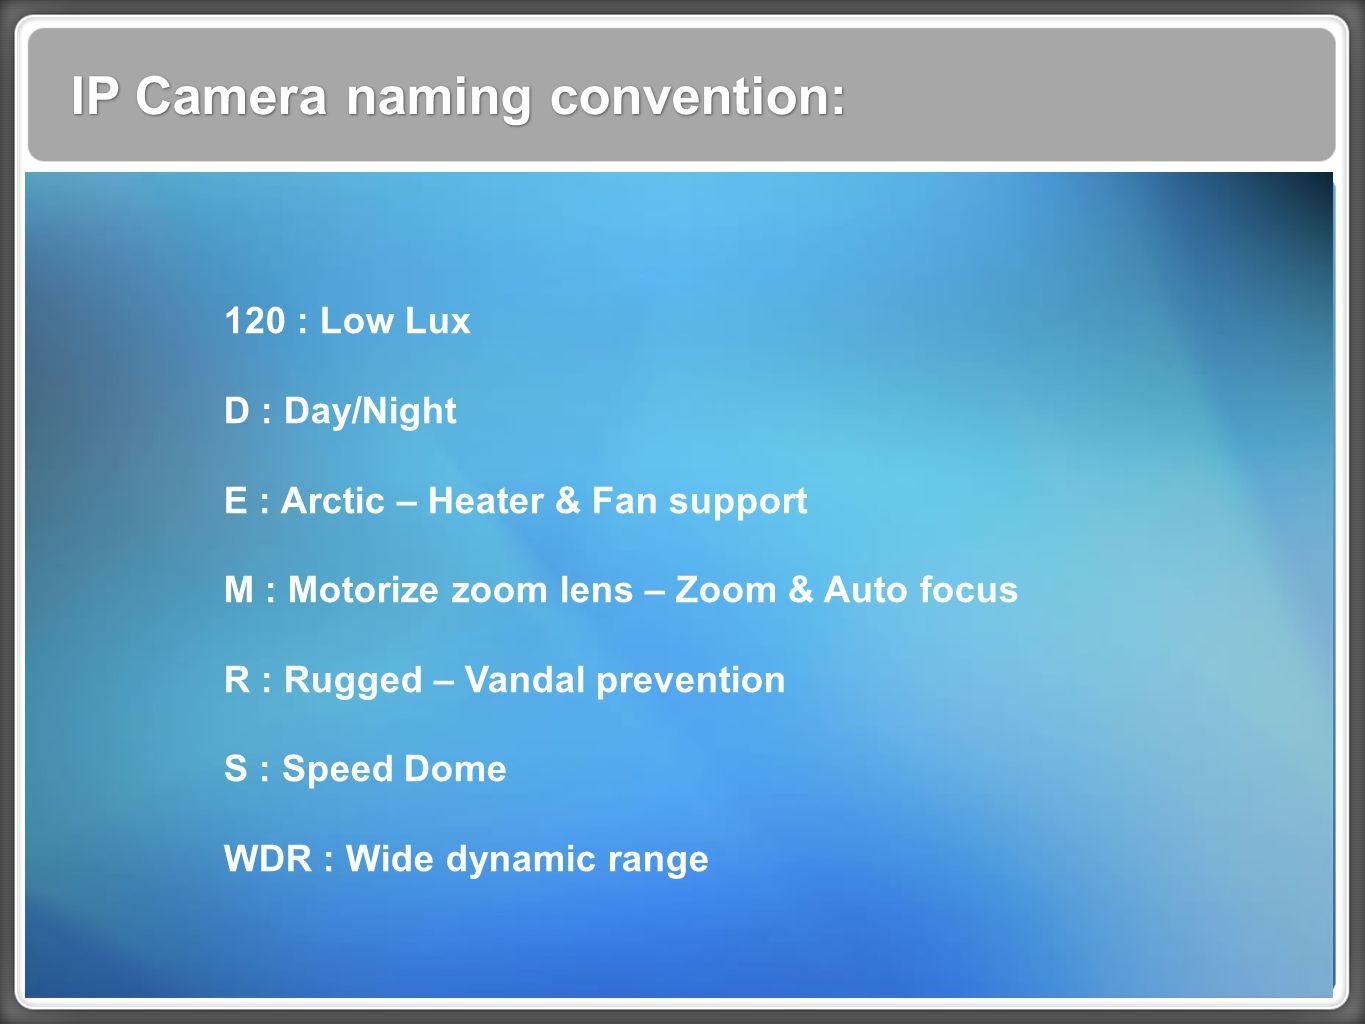 IP Camera naming convention: